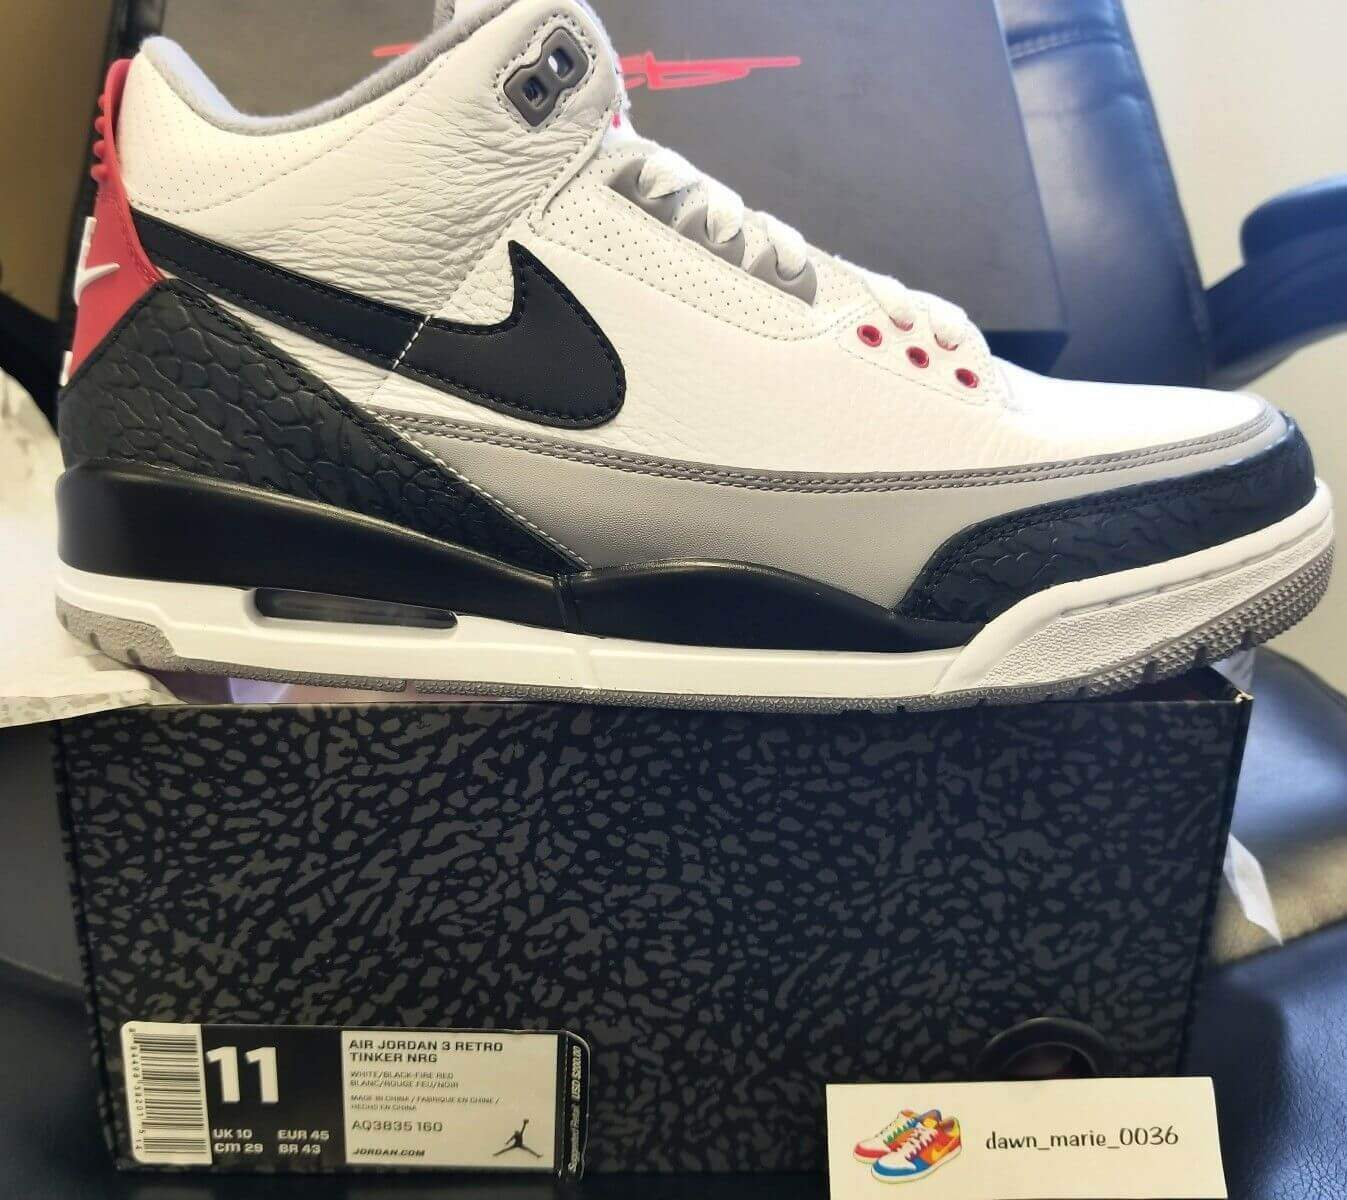 35ef4a54f67 ... the air jordan 3 nrg tinker jth is available early the implications